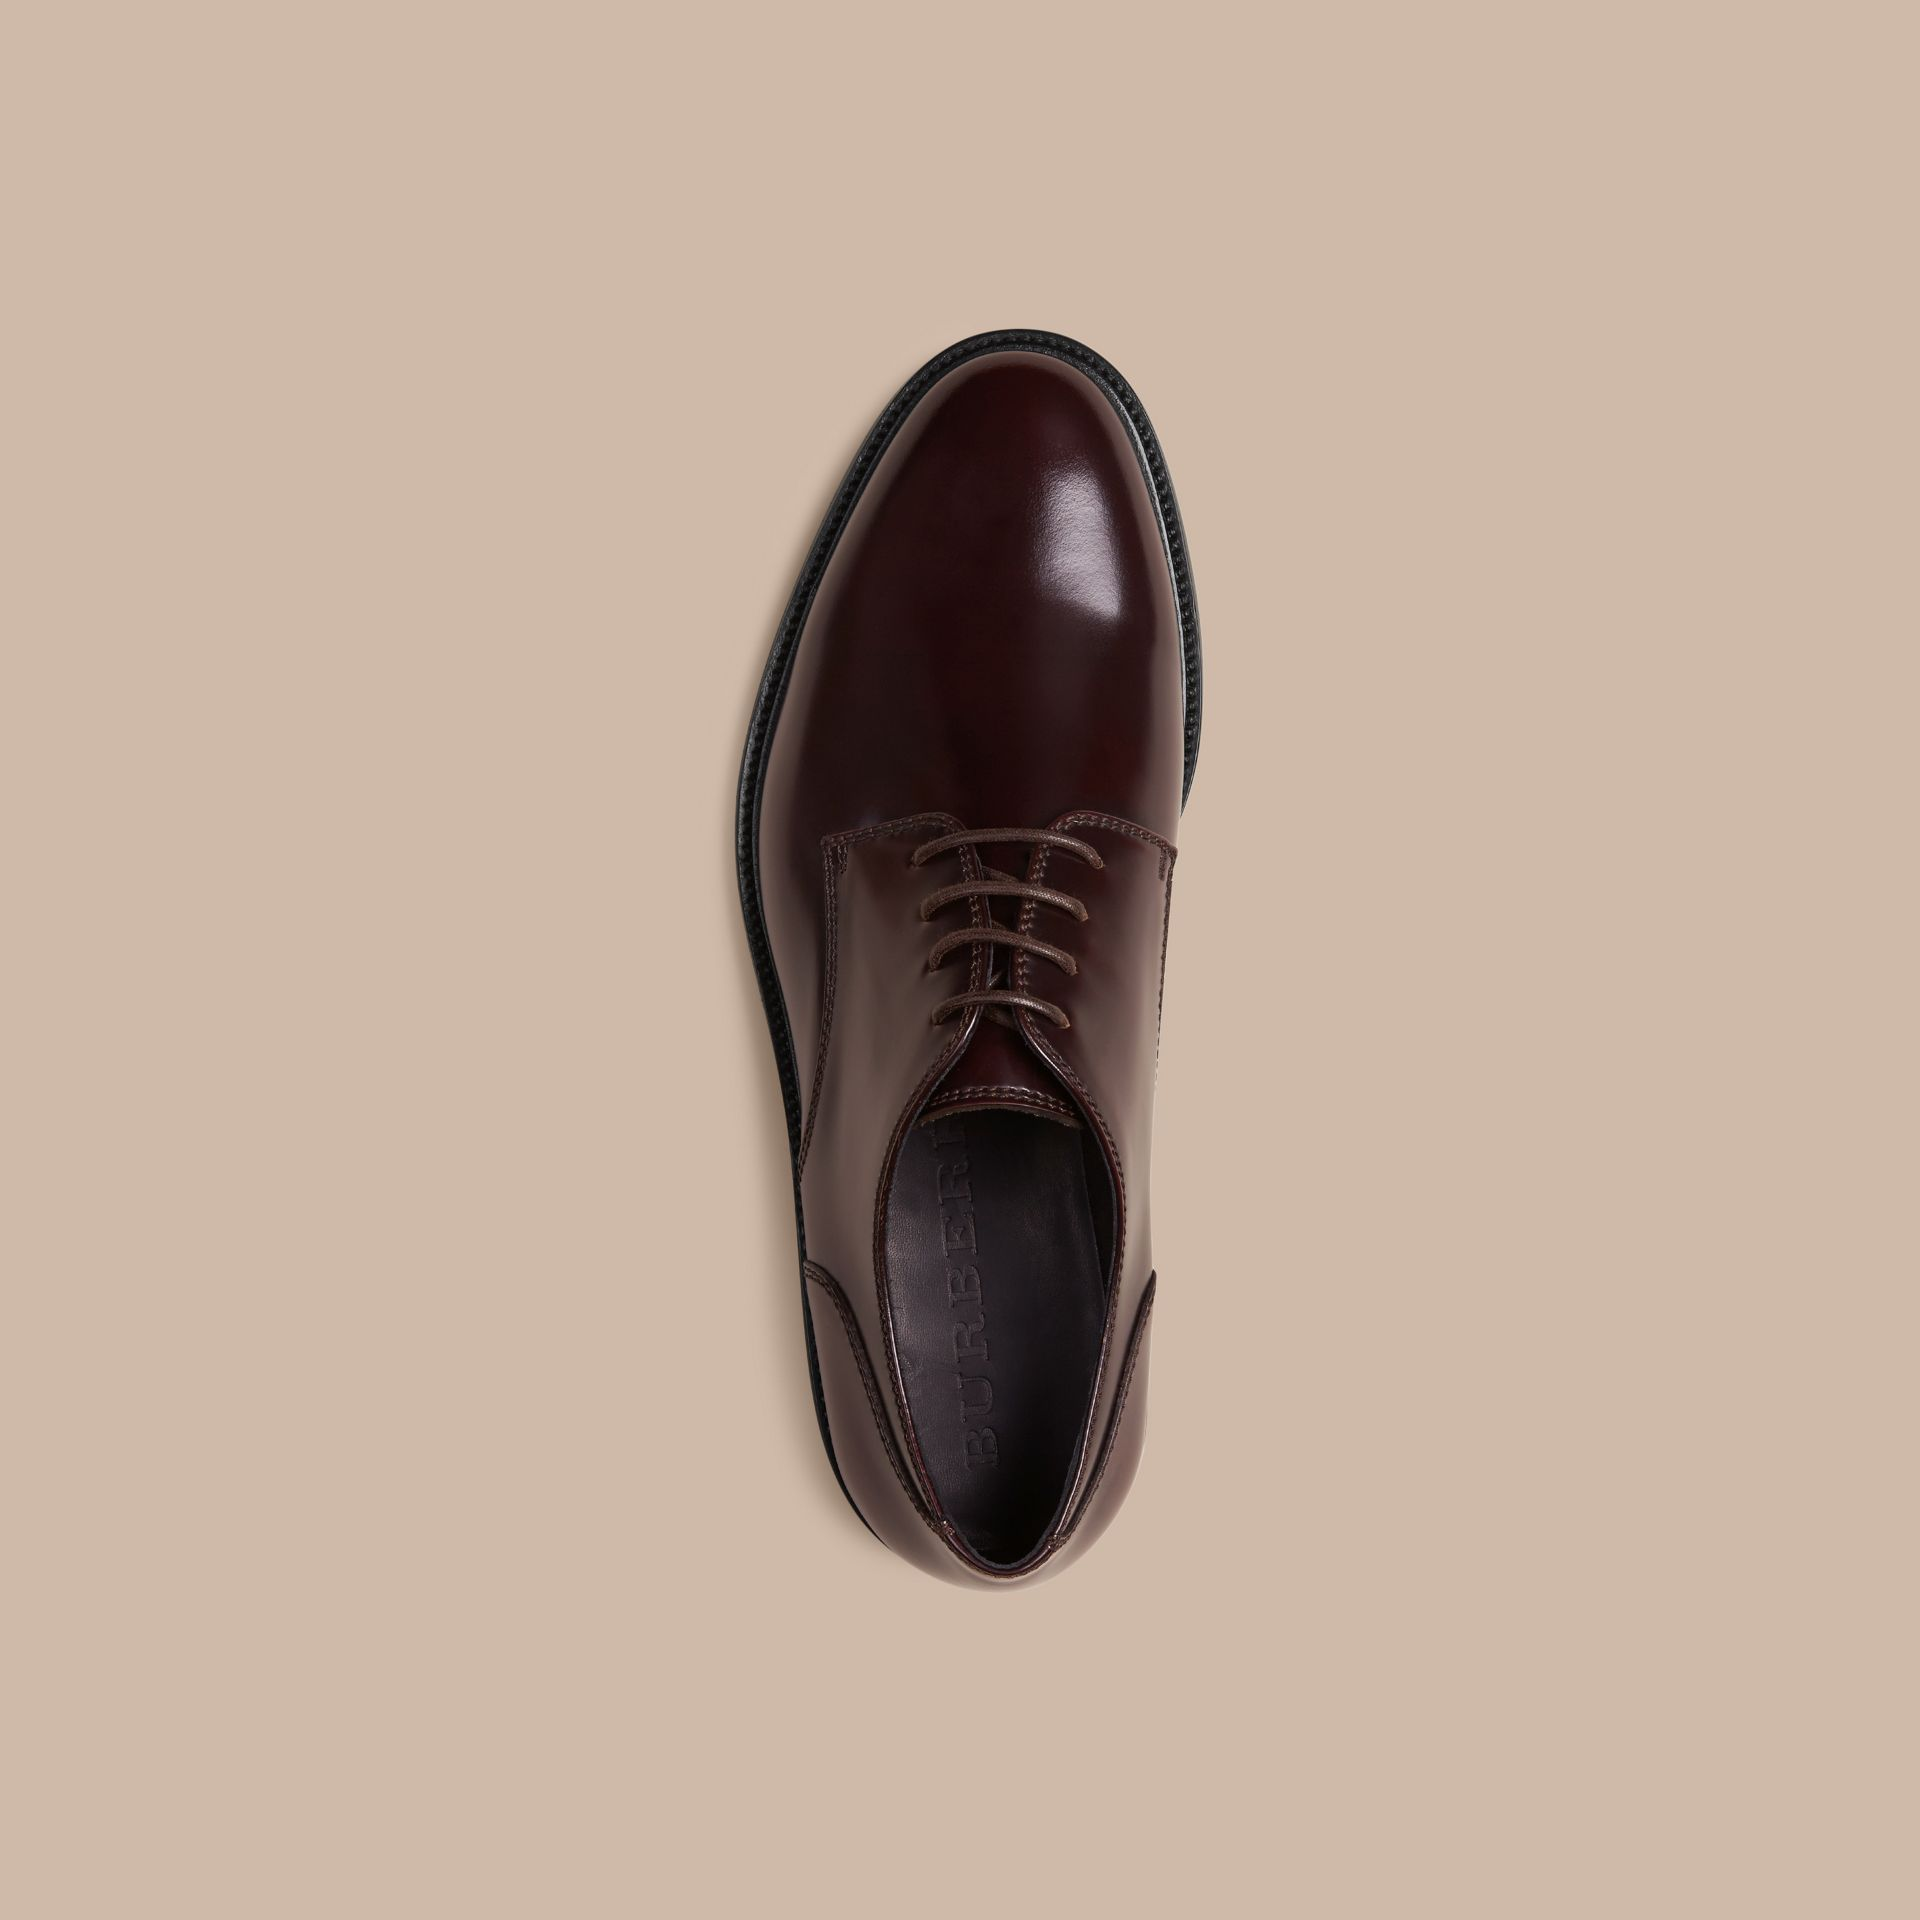 Oxblood Chaussures de style derby en cuir Oxblood - photo de la galerie 3